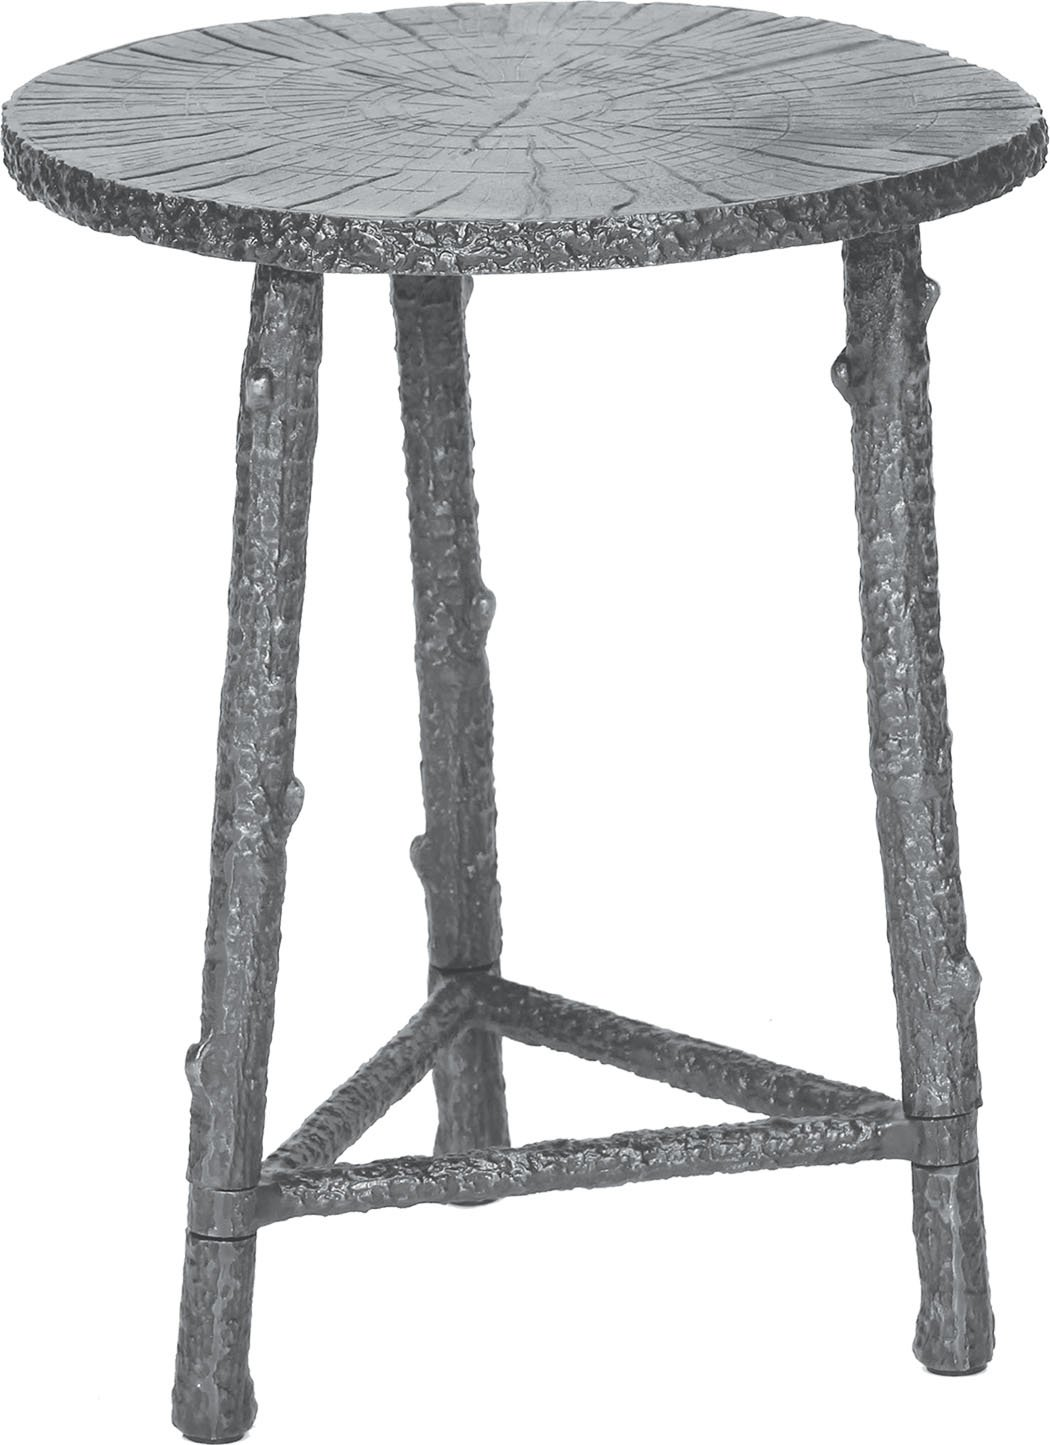 knox and harrison cast aluminum accent table kitchen dining home accents black pedestal end grey night long thin ikea standard lamps living room ornaments swing sets kidney shaped